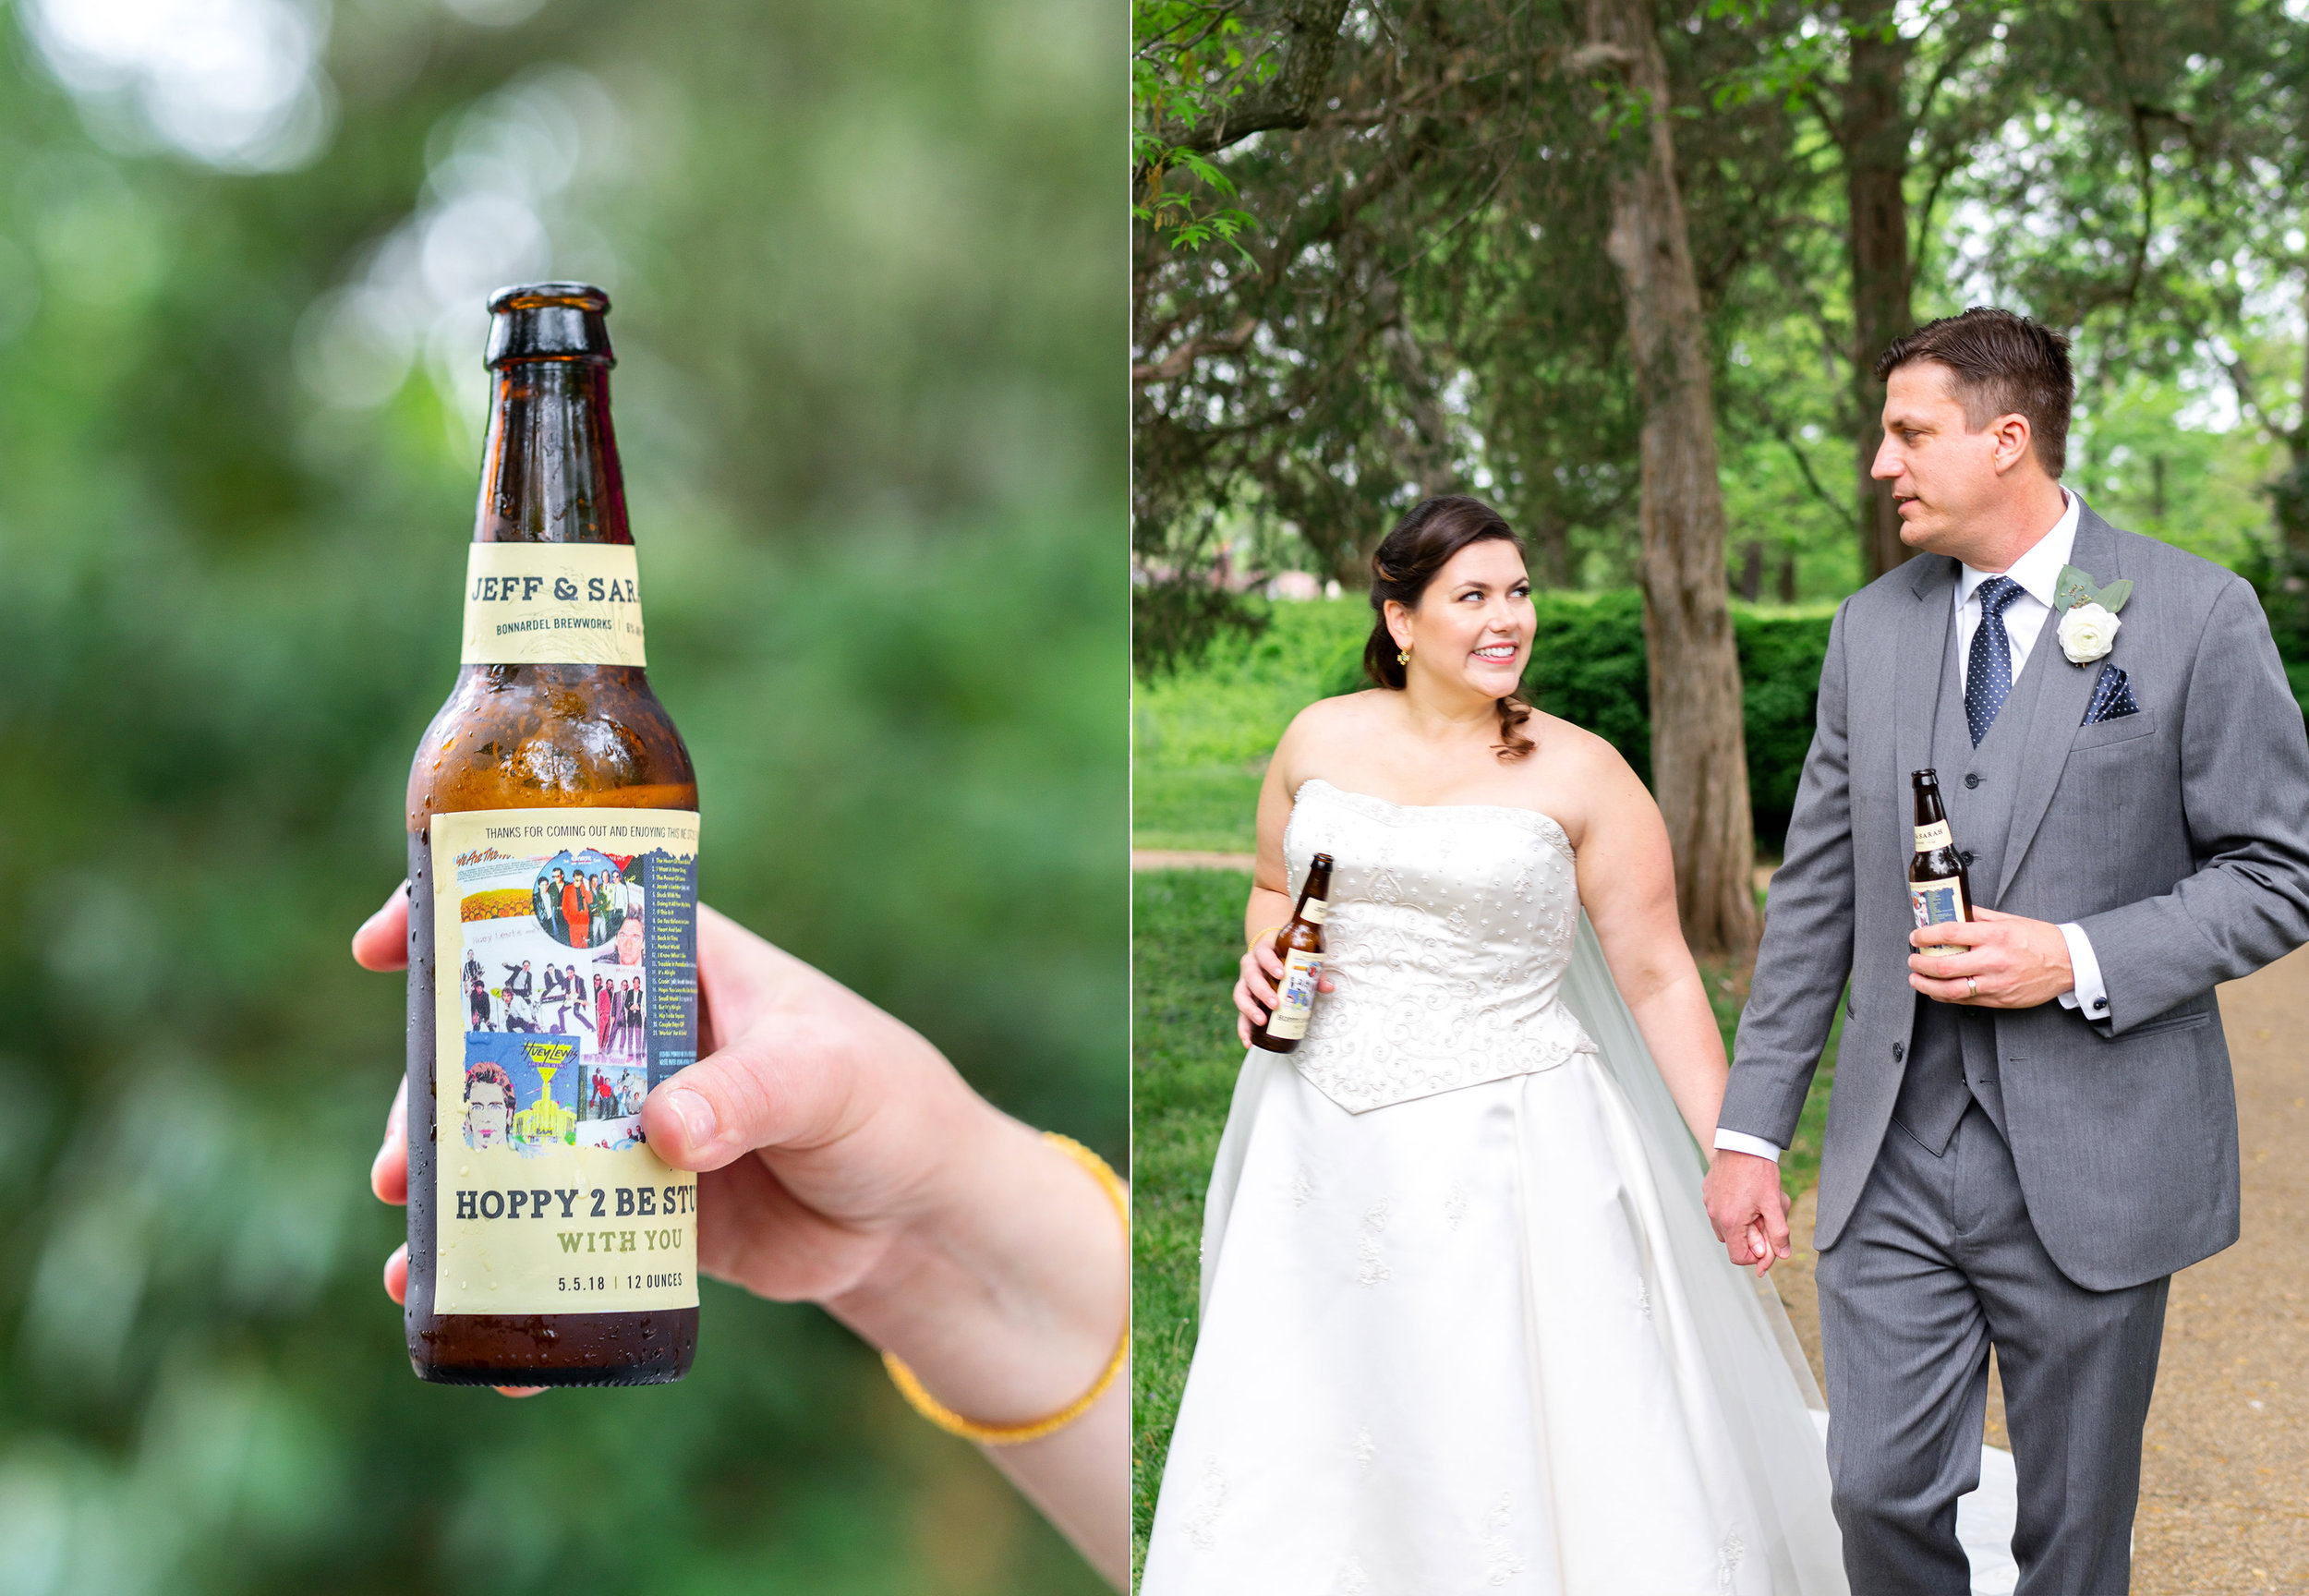 Custom beer bottle label for wedding at Hendry House (left) and bride and groom (right)